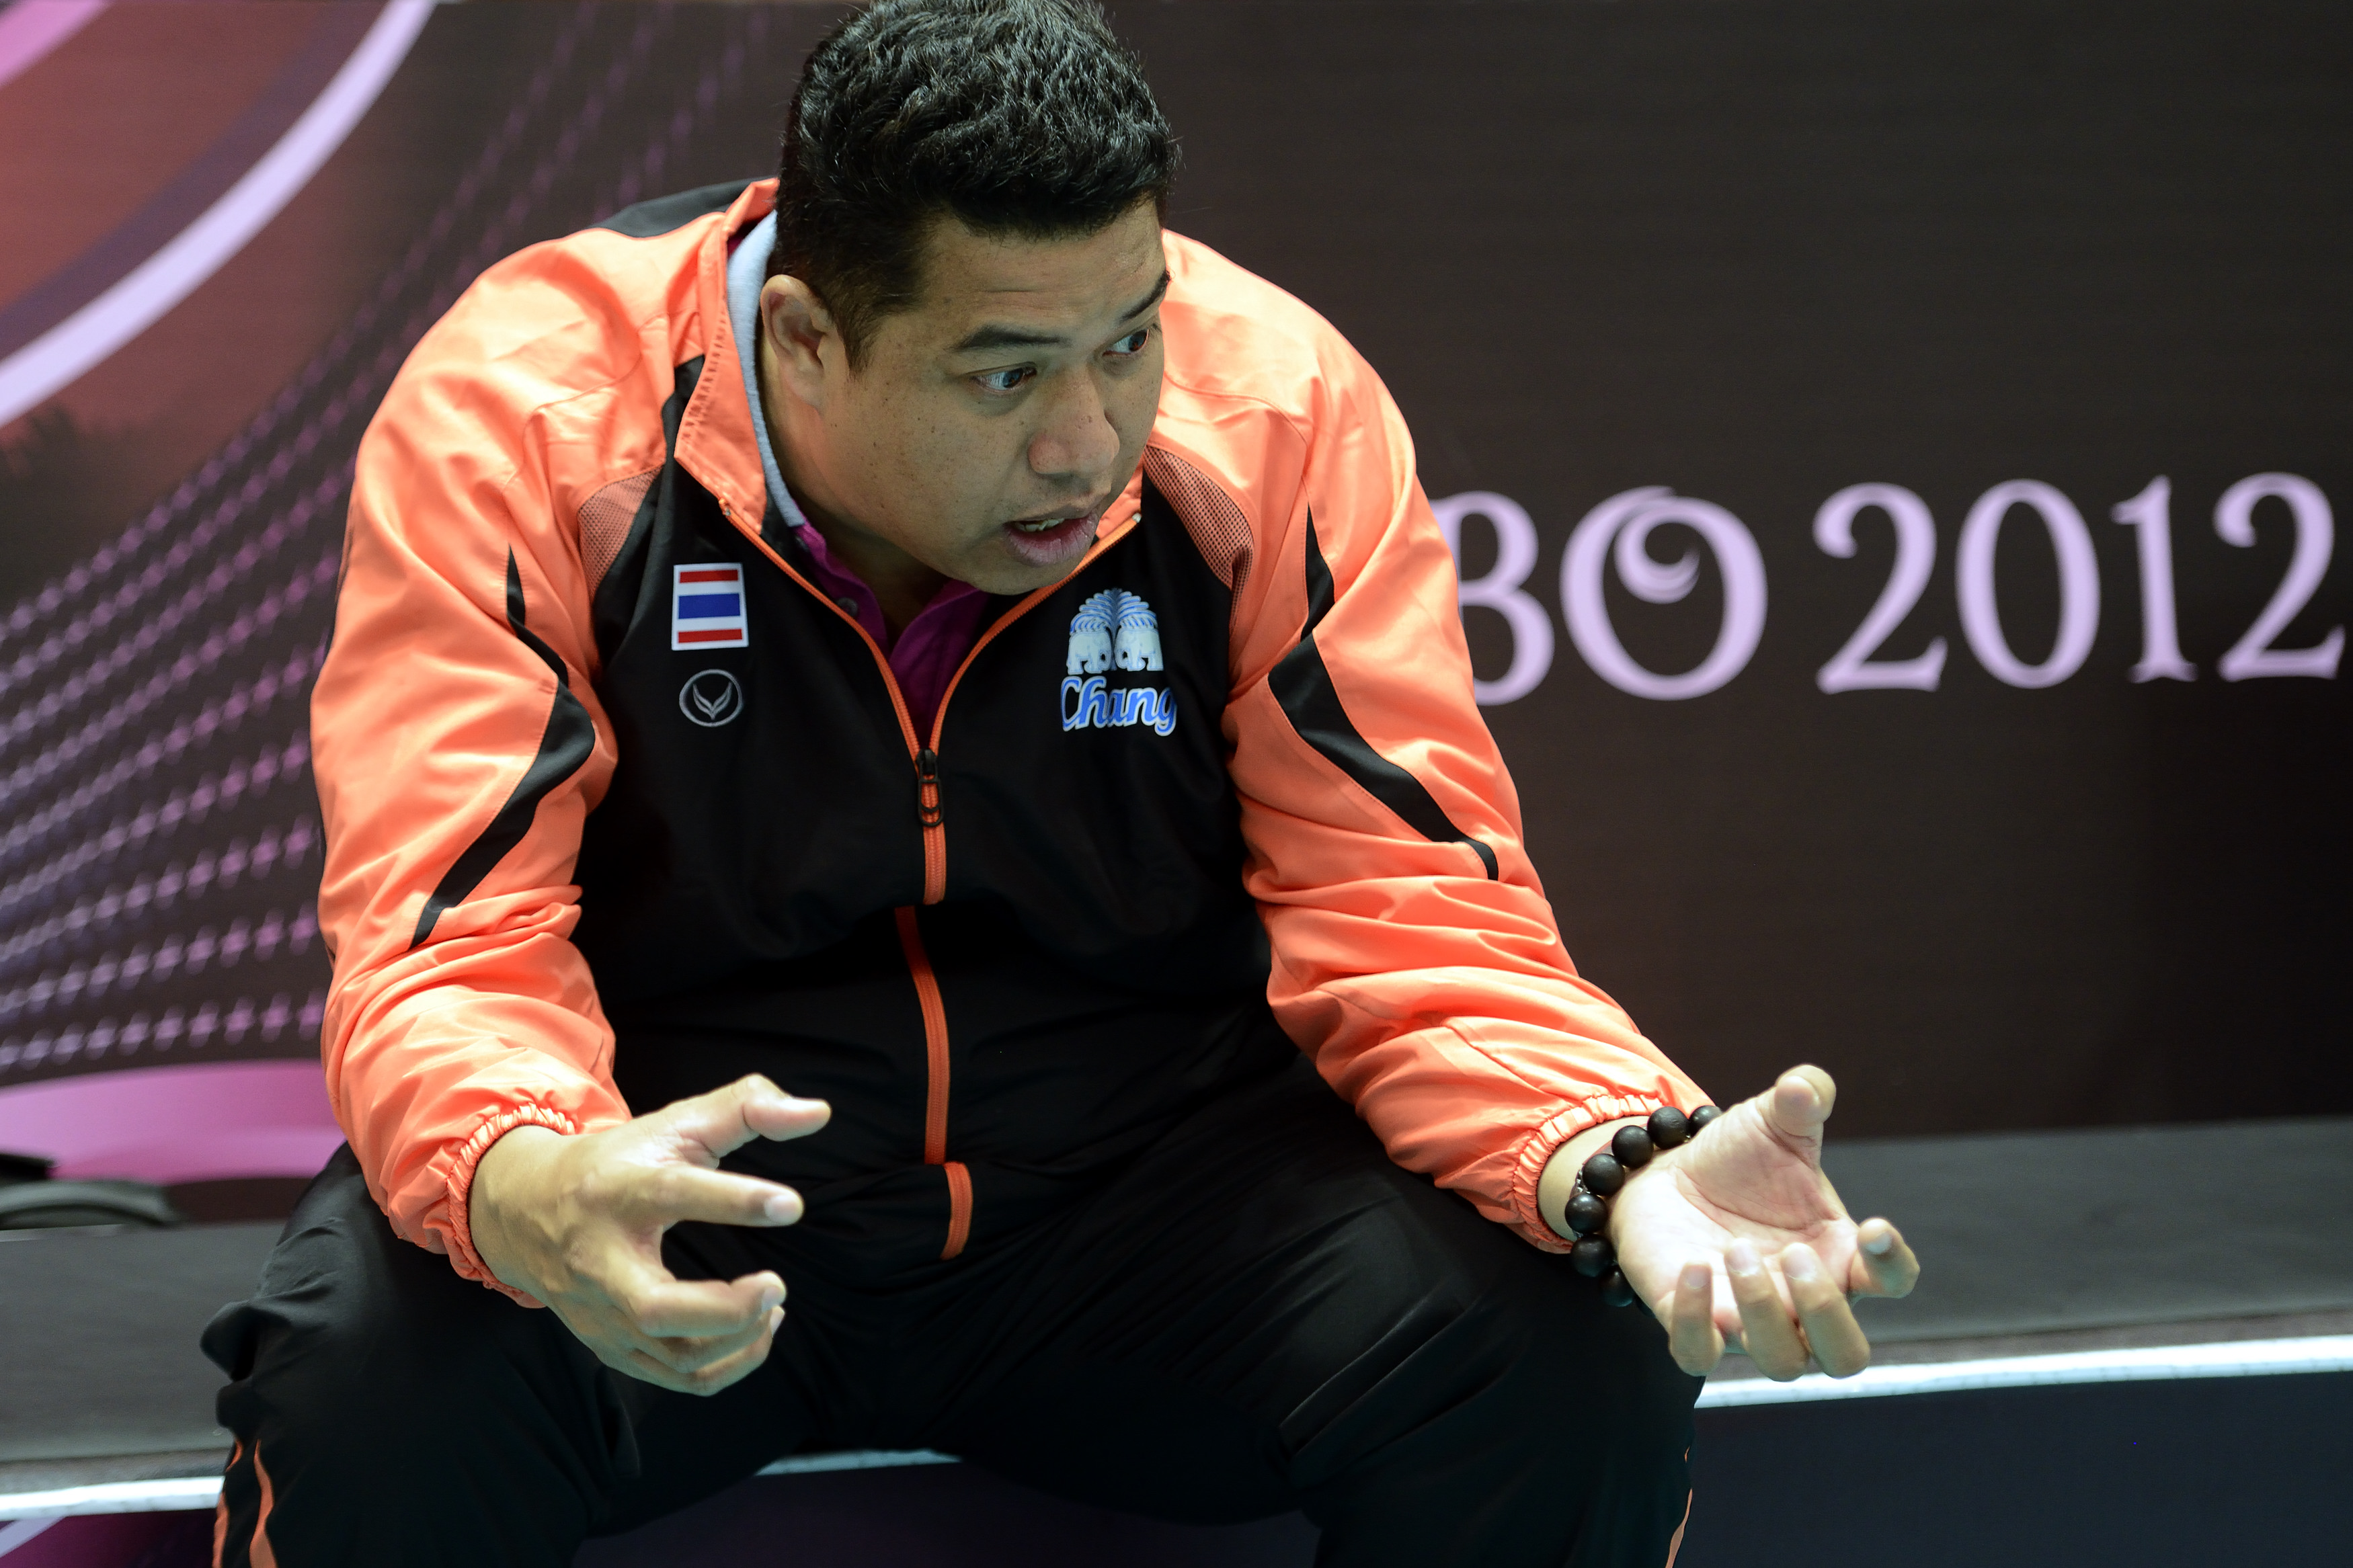 Head coach Kiattipong Radchatagriengkai feel disappointed about the 0-3 loss to Brasil